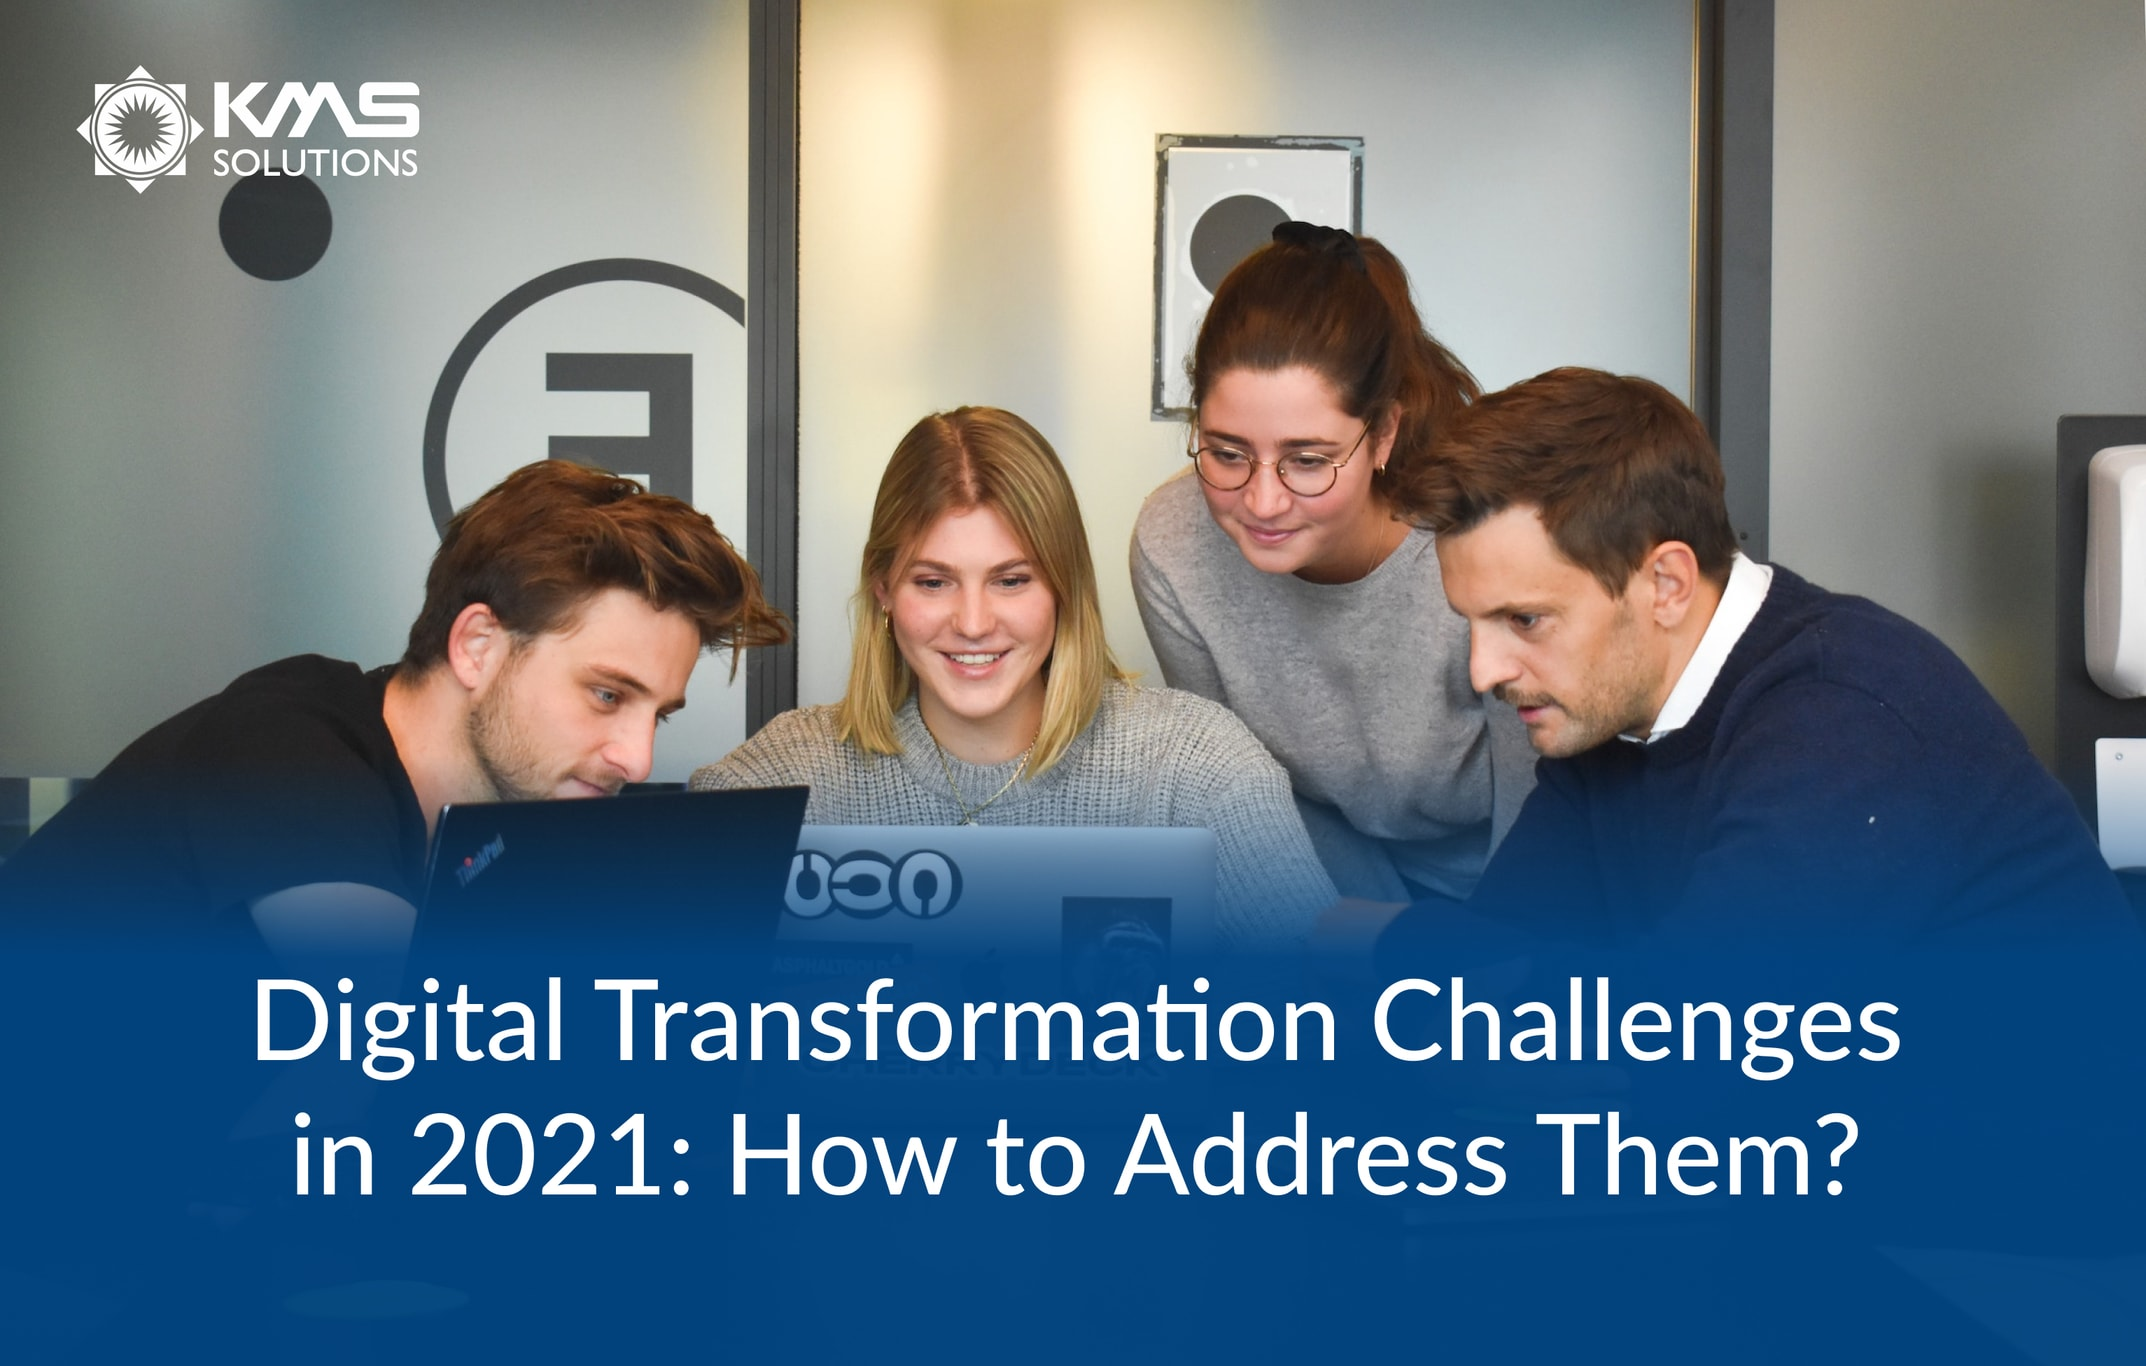 Digital Transformation Challenges in 2021 - KMS Solutions